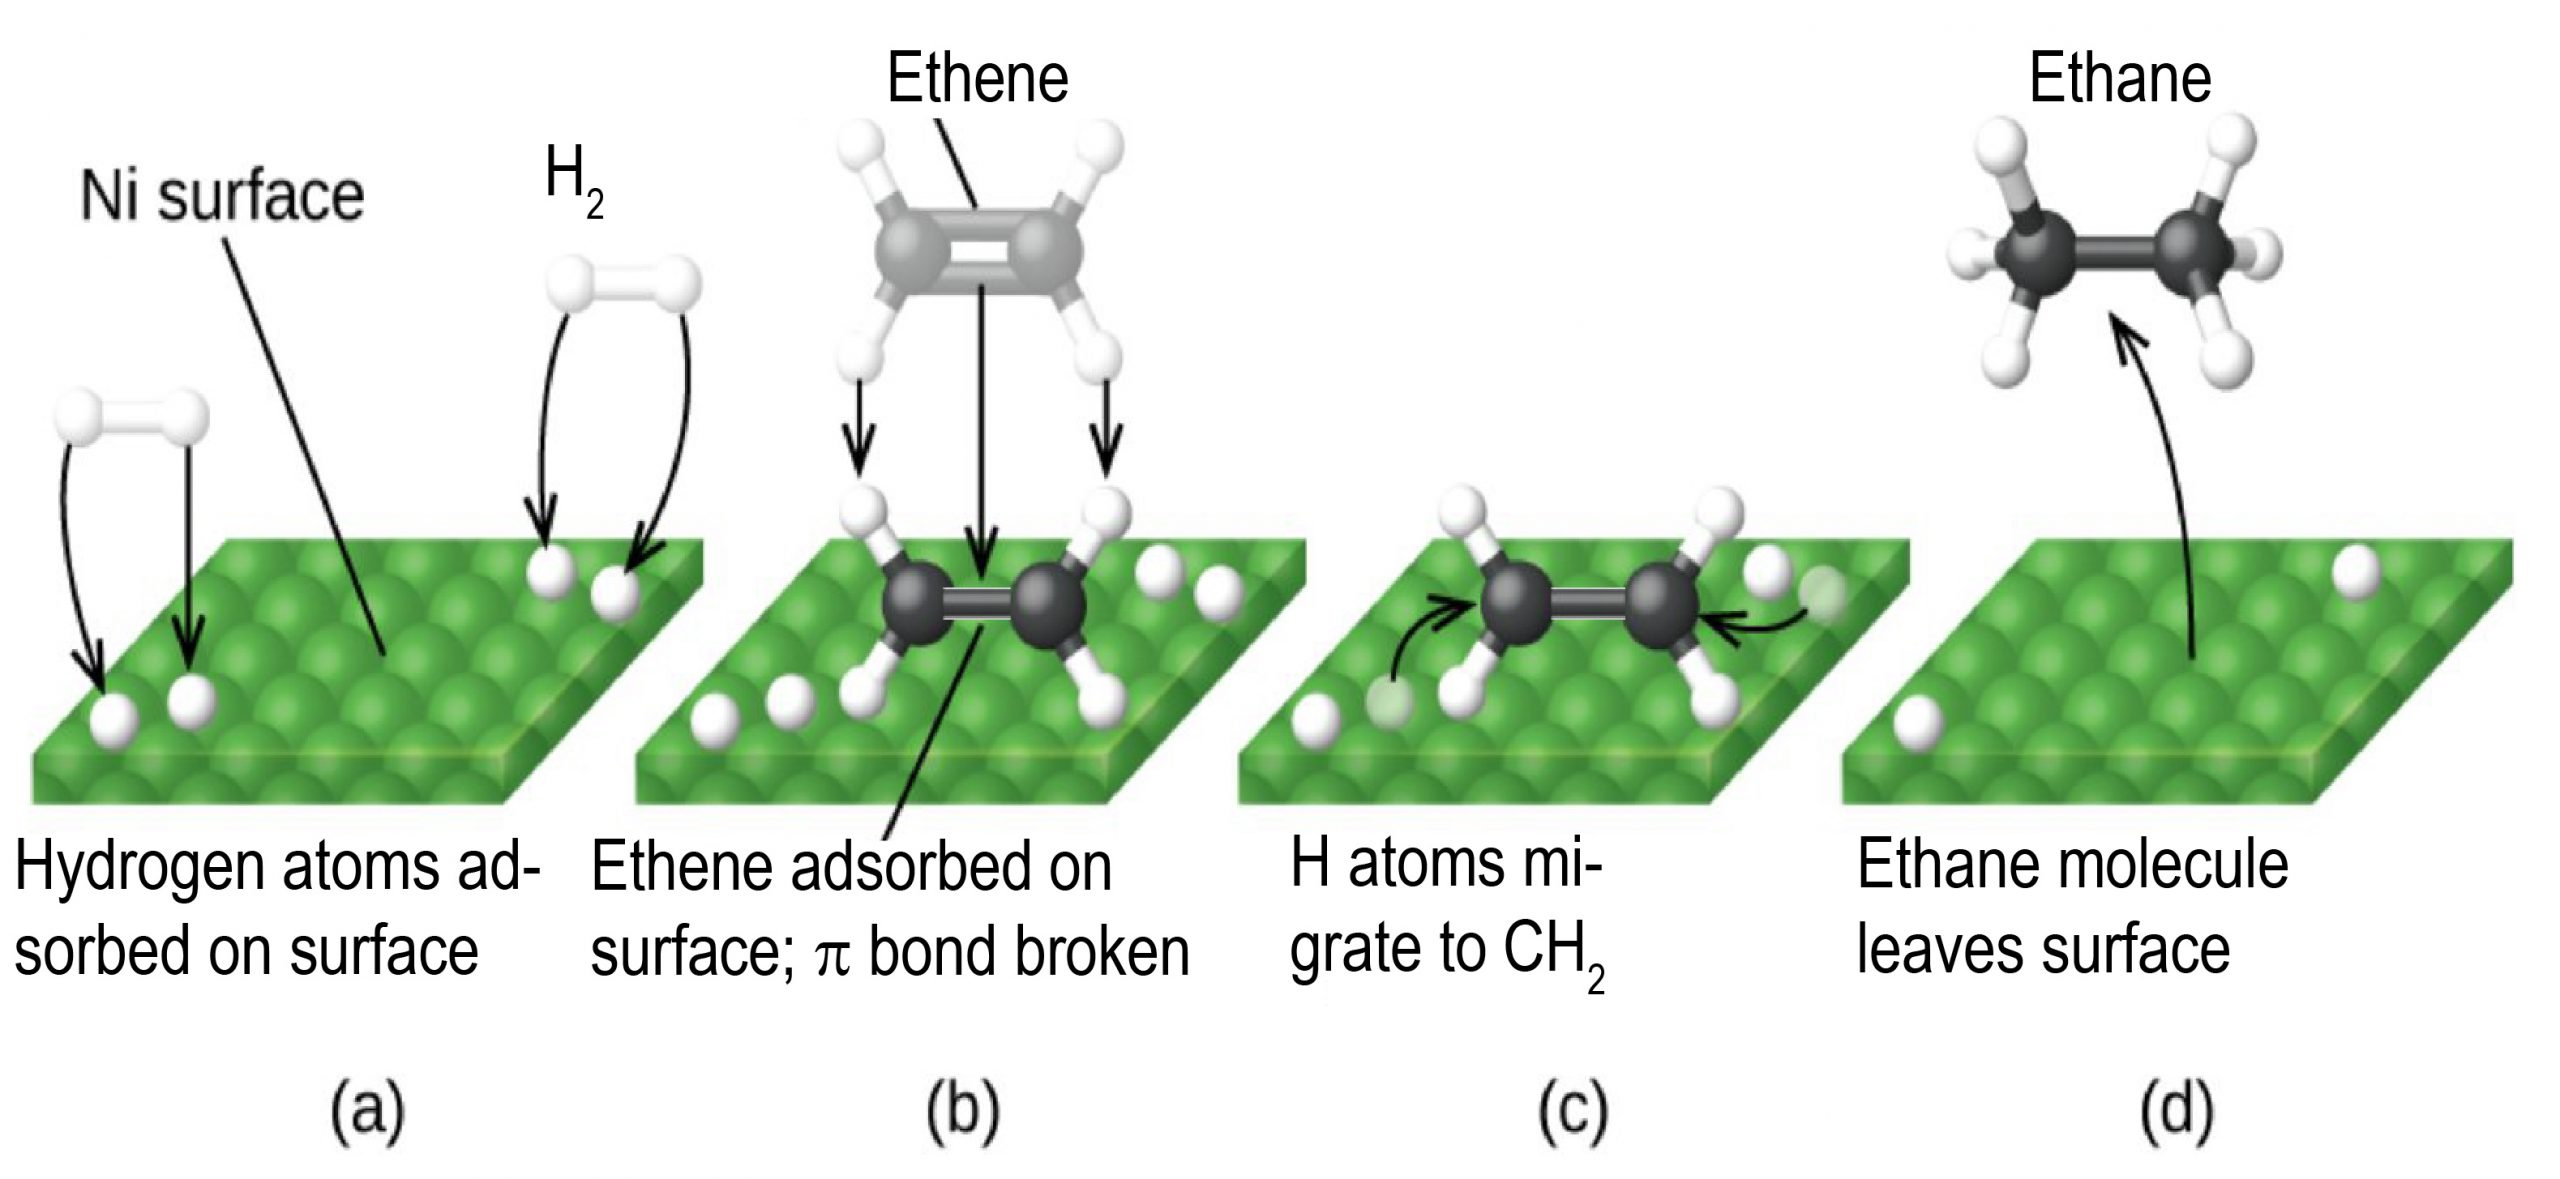 """In this figure, four diagrams labeled a through d are shown. In each, a square array of green spheres forming a nickel surface is shown in perspective to provide a three-dimensional appearance. In a, the label """"N i surface"""" is placed above with a line segment extending to the green spheres. At the lower left and upper right, pairs of white spheres bonded tougher together appear as well as white spheres on the green surface. Black arrows are drawn from each of the white spheres above the surface to the white sphere on the green surface. In b, the white spheres are still present on the green surface. Above the surface is a grayed-out structure labeled ethene with two C atoms and four H atoms. The label """"Ethene"""" at the top of the diagram is connected to the greyed out structure with a line segment. Arrows indicating motion point down from this structure to a an ethene molecule with two central black spheres with a single bond indicated by a horizontal black rod between them. Above and below to the left and right, a total of four white spheres are connected to the black spheres with white rods. A line segment extends from this structure to the label, """"Ethene adsorbed on surface; pi bond broken."""" In c, the diagram is very similar to b except that the greyed out structure and labels are gone and one of the white spheres near the black and white structure in each pair on the green surface is greyed out. Arrows point from each greyed-out white sphere to each of the two black spheres. There is a label below that says, """"H atoms migrate to C H 2"""". In d, only a single white sphere remains from each pair in the green surface. A curved arrow points from the middle of the green surface to a model above with two central black carbon-atom spheres with a single black rod indicating a single bond between them. Each of the black spheres has three small white spheres bonded as indicated by white rods between the black spheres and the small white spheres. The four bonds around each black"""